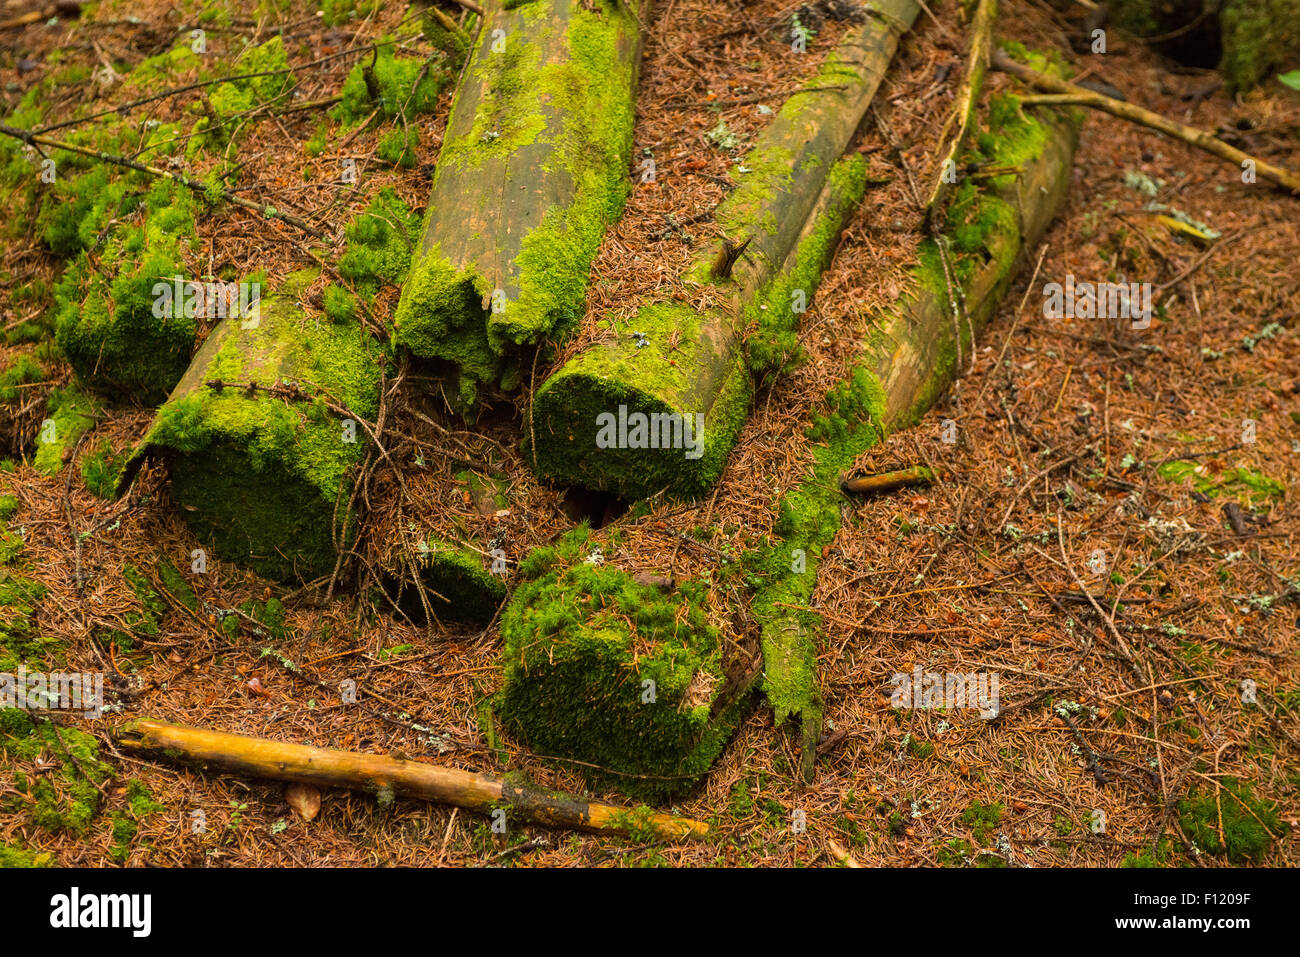 Rotting tree. A fallen tree trunk decomposes on forest floor, rotting and turning back into soil - Stock Image